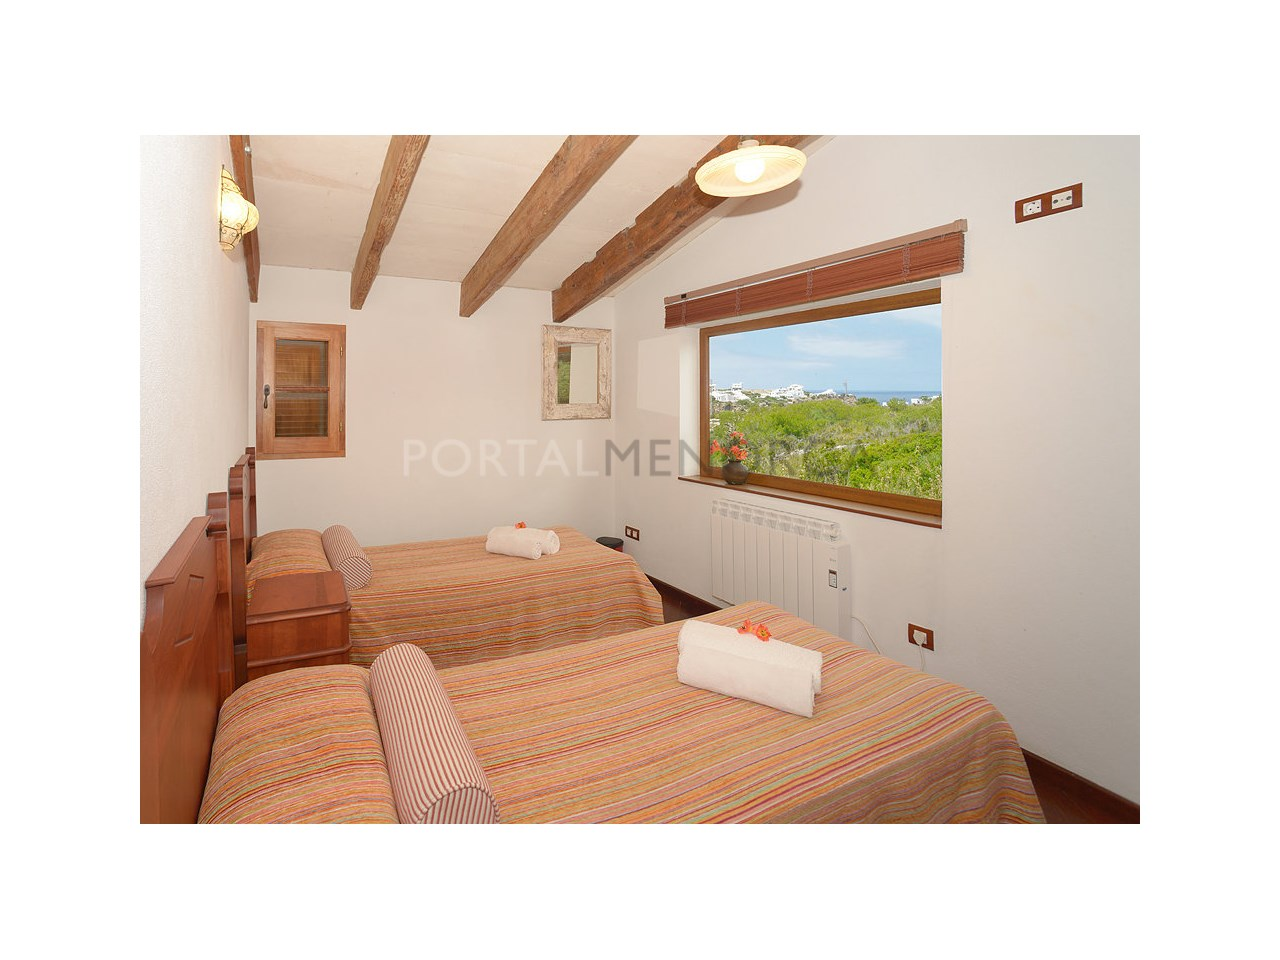 Countryhouse for sale in the Son Morell area-Bedroom with views